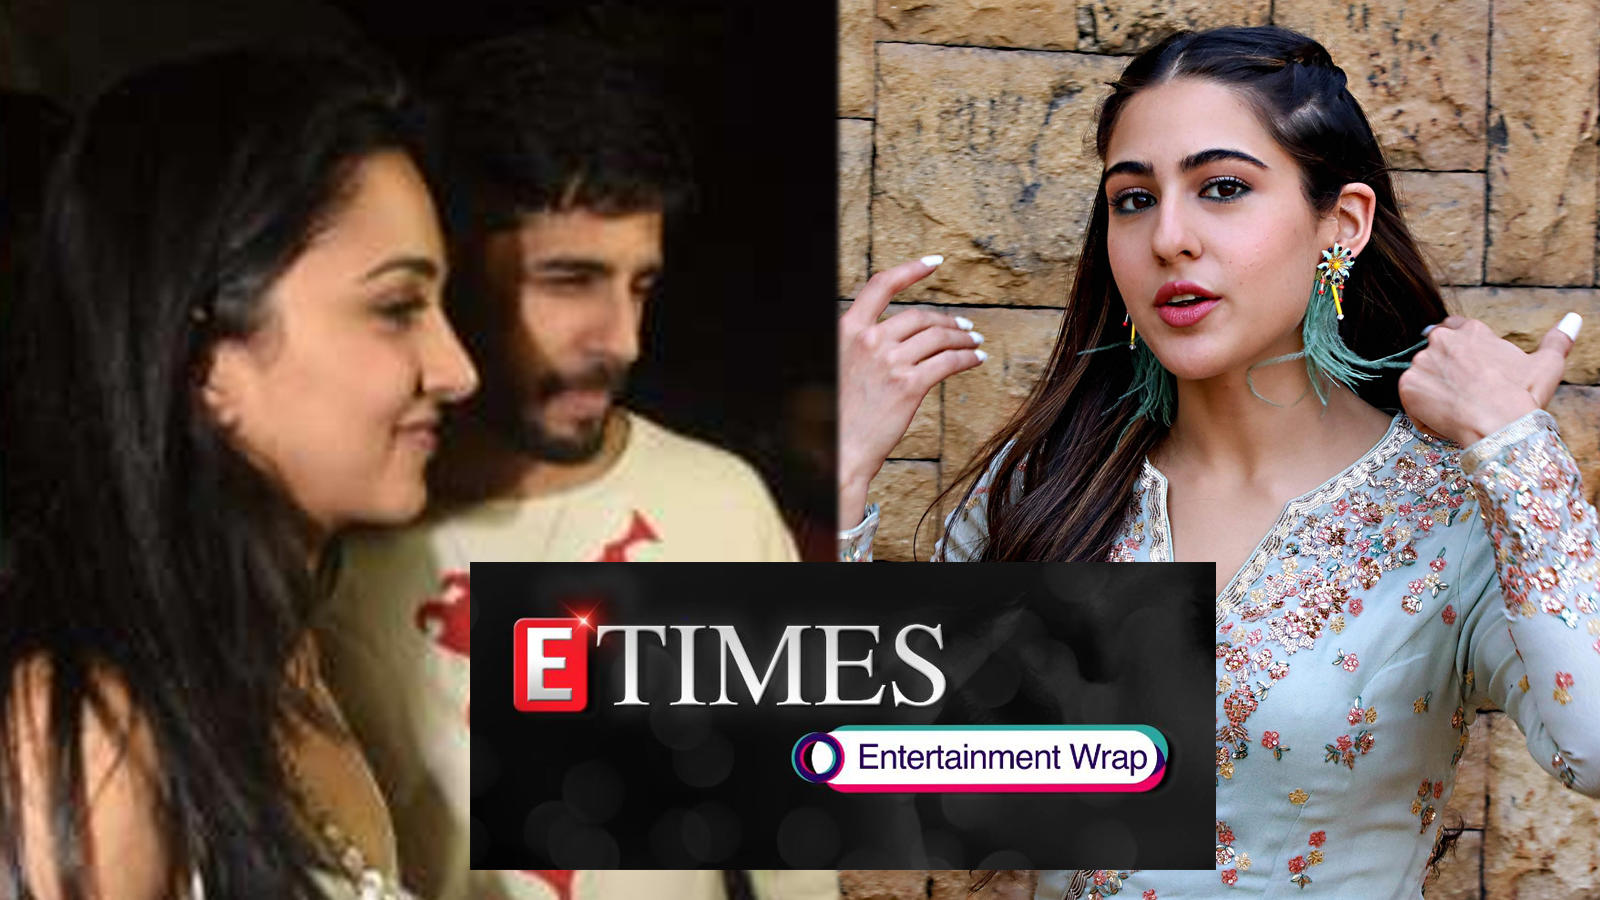 kiara-advani-has-the-best-response-when-asked-to-suggest-a-dating-app-bio-for-sidharth-malhotra-sara-ali-khan-opens-up-about-the-scrutiny-movie-stars-face-in-todays-day-and-age-and-more-